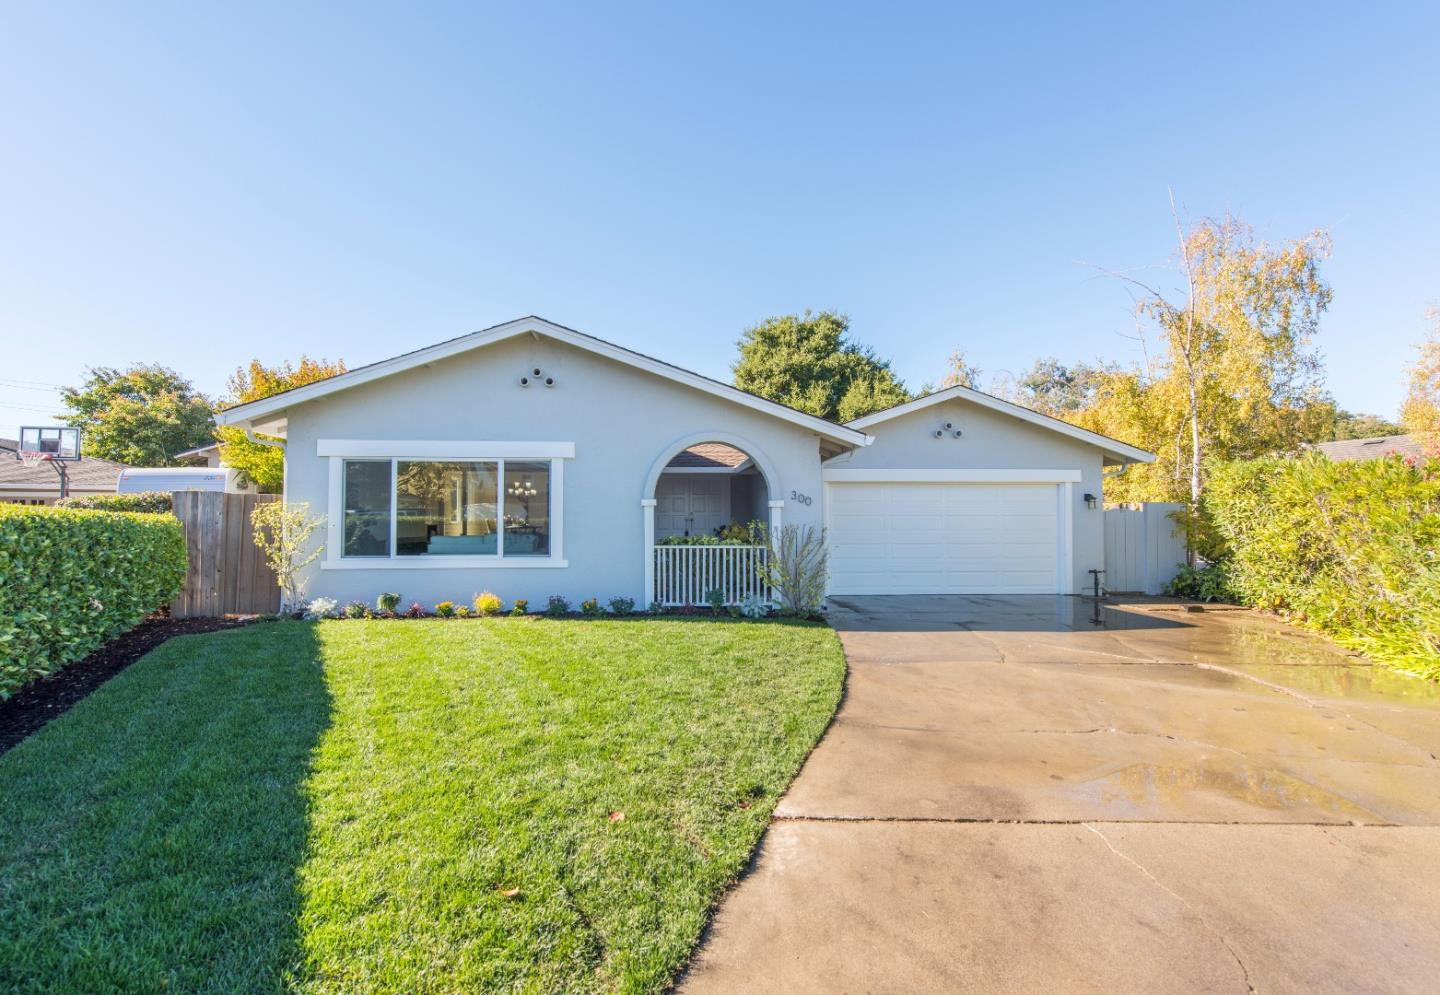 Single Family Home for Sale at 300 Bowfin Street 300 Bowfin Street Foster City, California 94404 United States